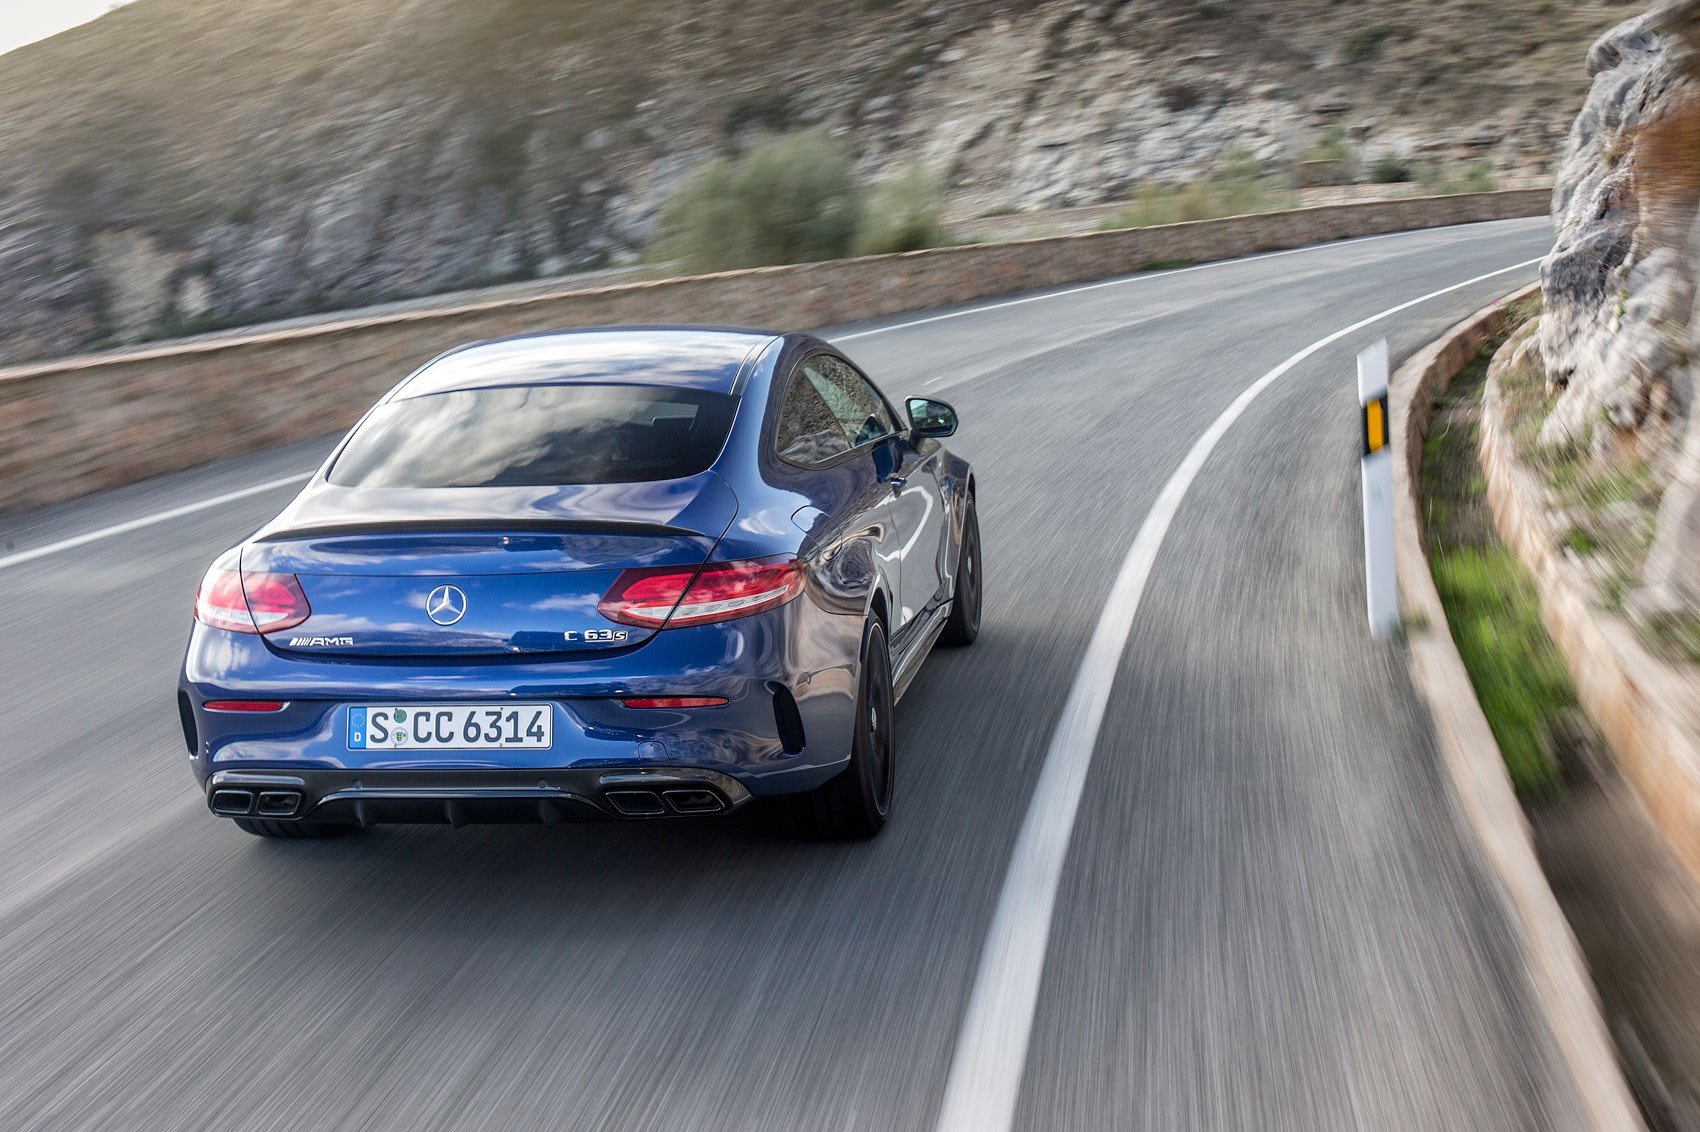 Mercedes amg c63 s coupe 2015 review by car magazine - Mercedes c63 amg coupe 2015 ...